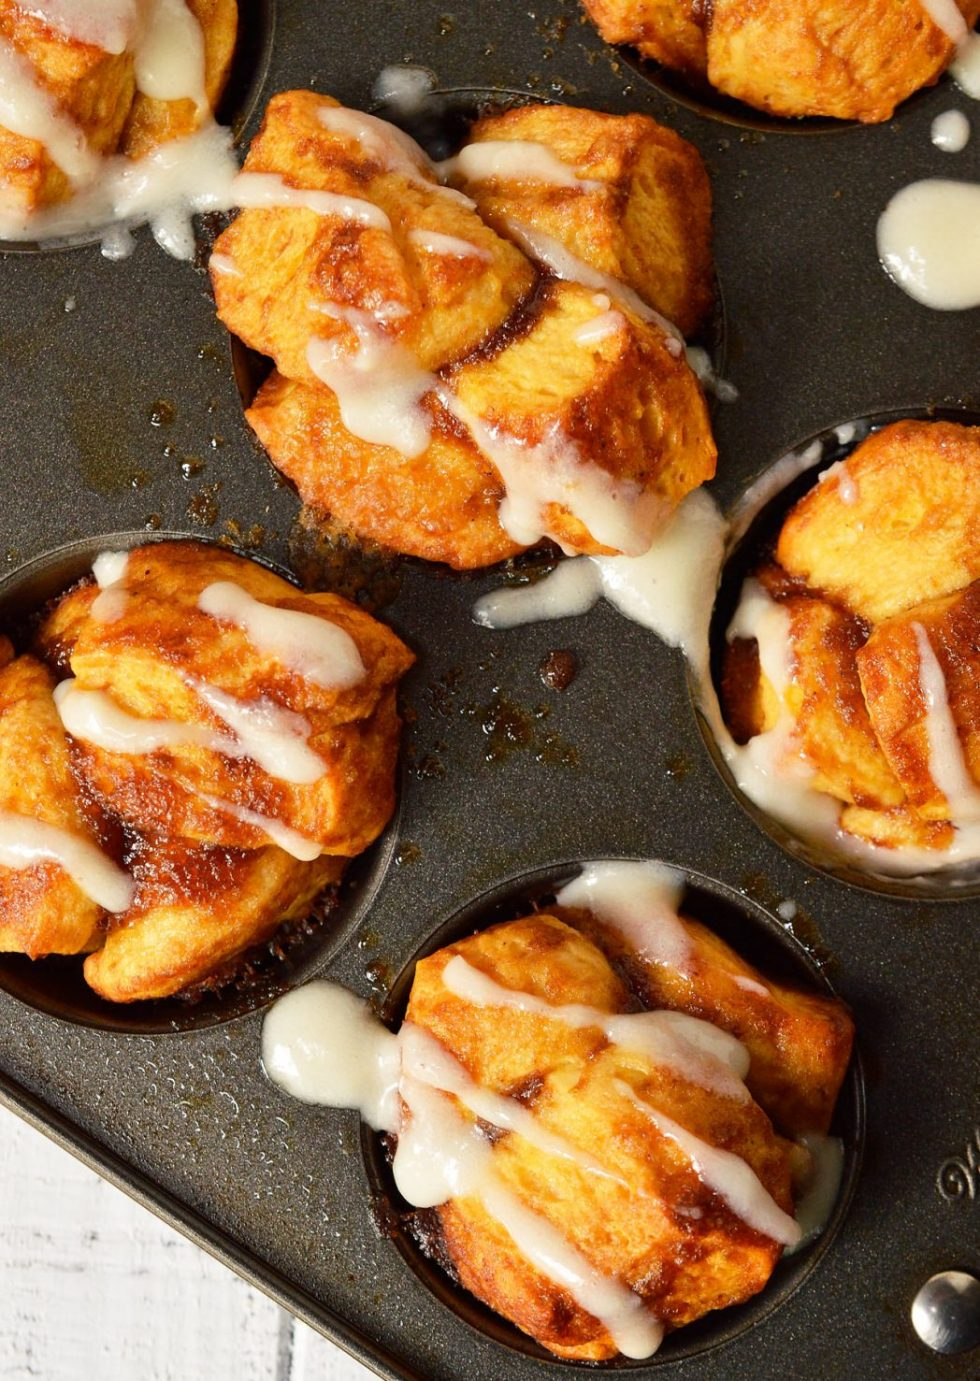 Need an easy breakfast recipe that will feed your hungry crowd? TheseMonkey Bread Muffins are made with just 4 ingredients and take no time at all! Like sticky buns with a cream cheese glaze without all the hassle.